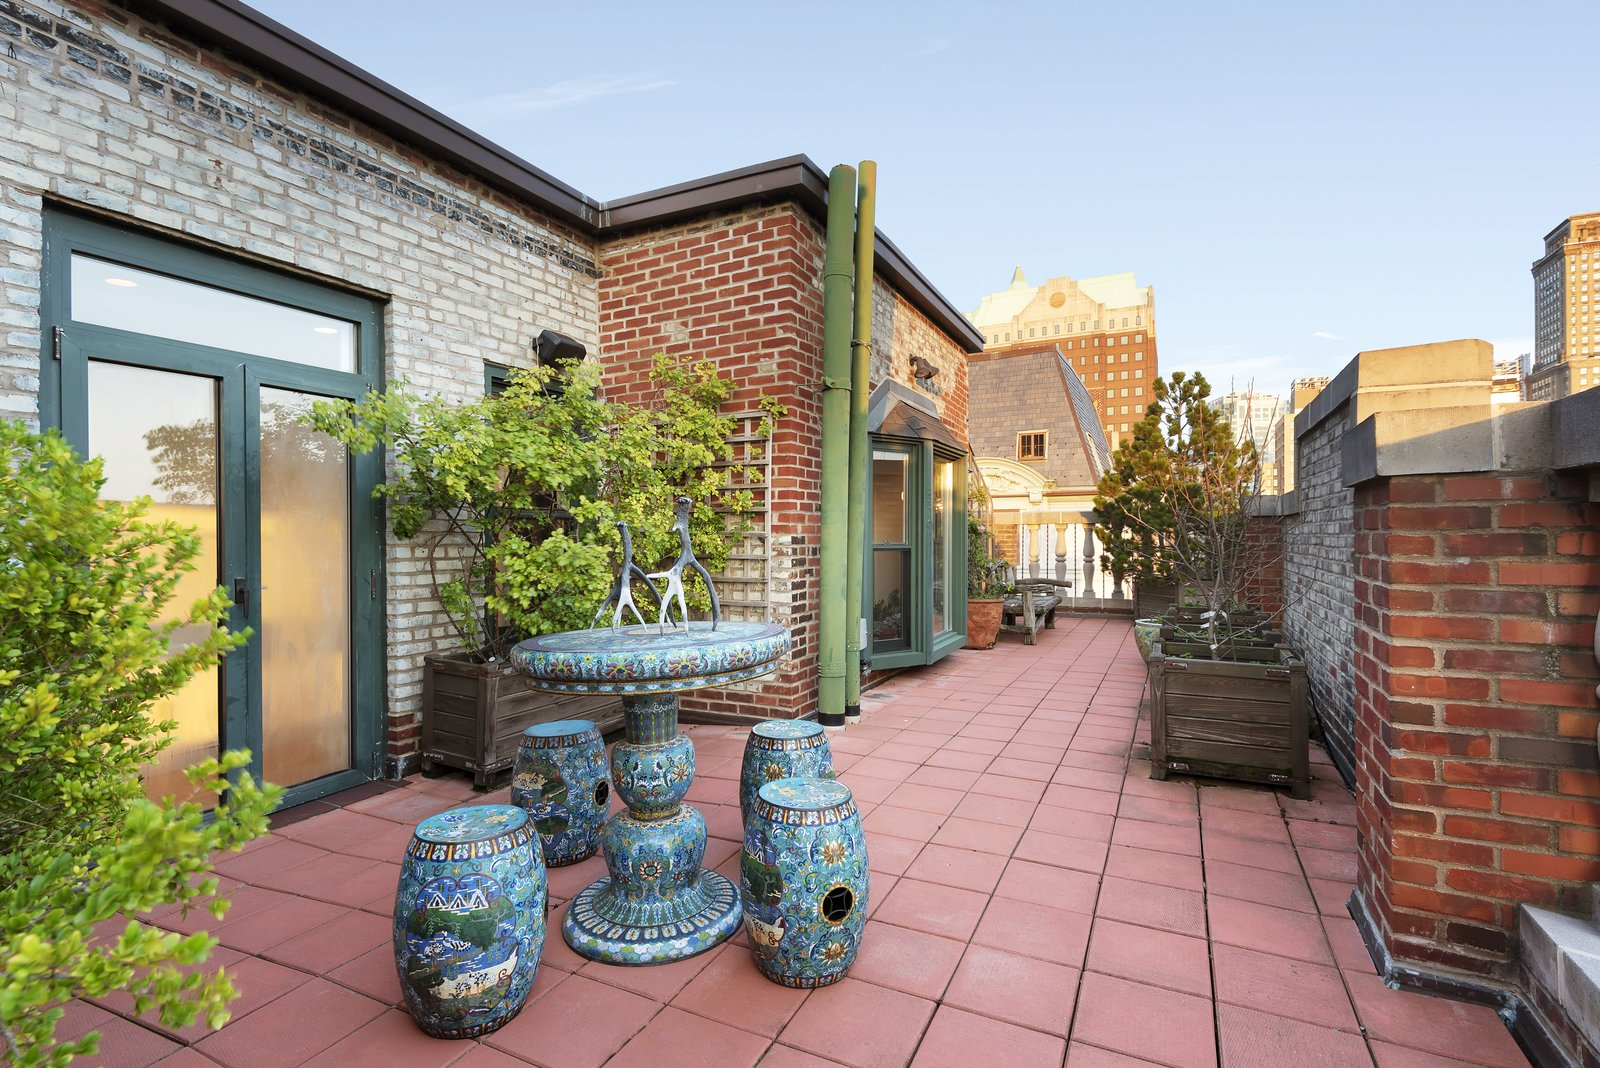 Outdoor, Rooftop, Large Patio, Porch, Deck, Horizontal Fences, Wall, Raised Planters, Tile Patio, Porch, Deck, Shrubs, Trees, and Hanging Lighting The terrace provides ample room for outdoor entertaining.   Photo 2 of 12 in Björk Puts Her Brooklyn Heights Penthouse on the Market For $9M